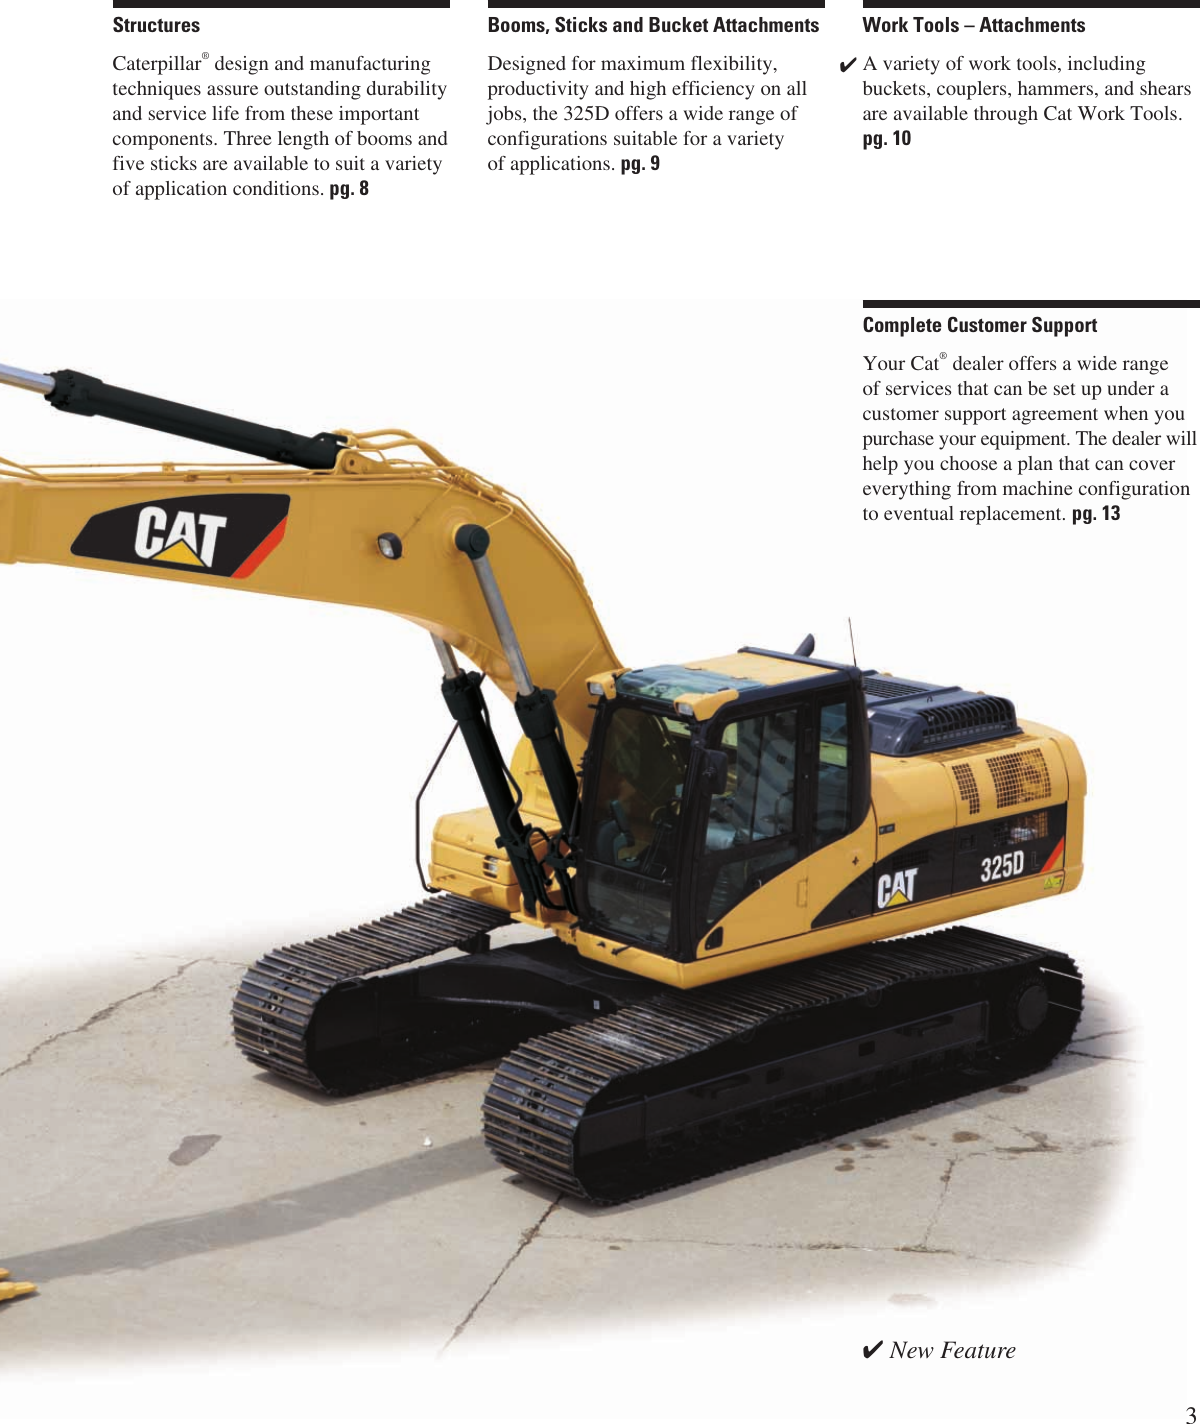 Cat 325Dl Users Manual Specalog For 325D L Hydraulic